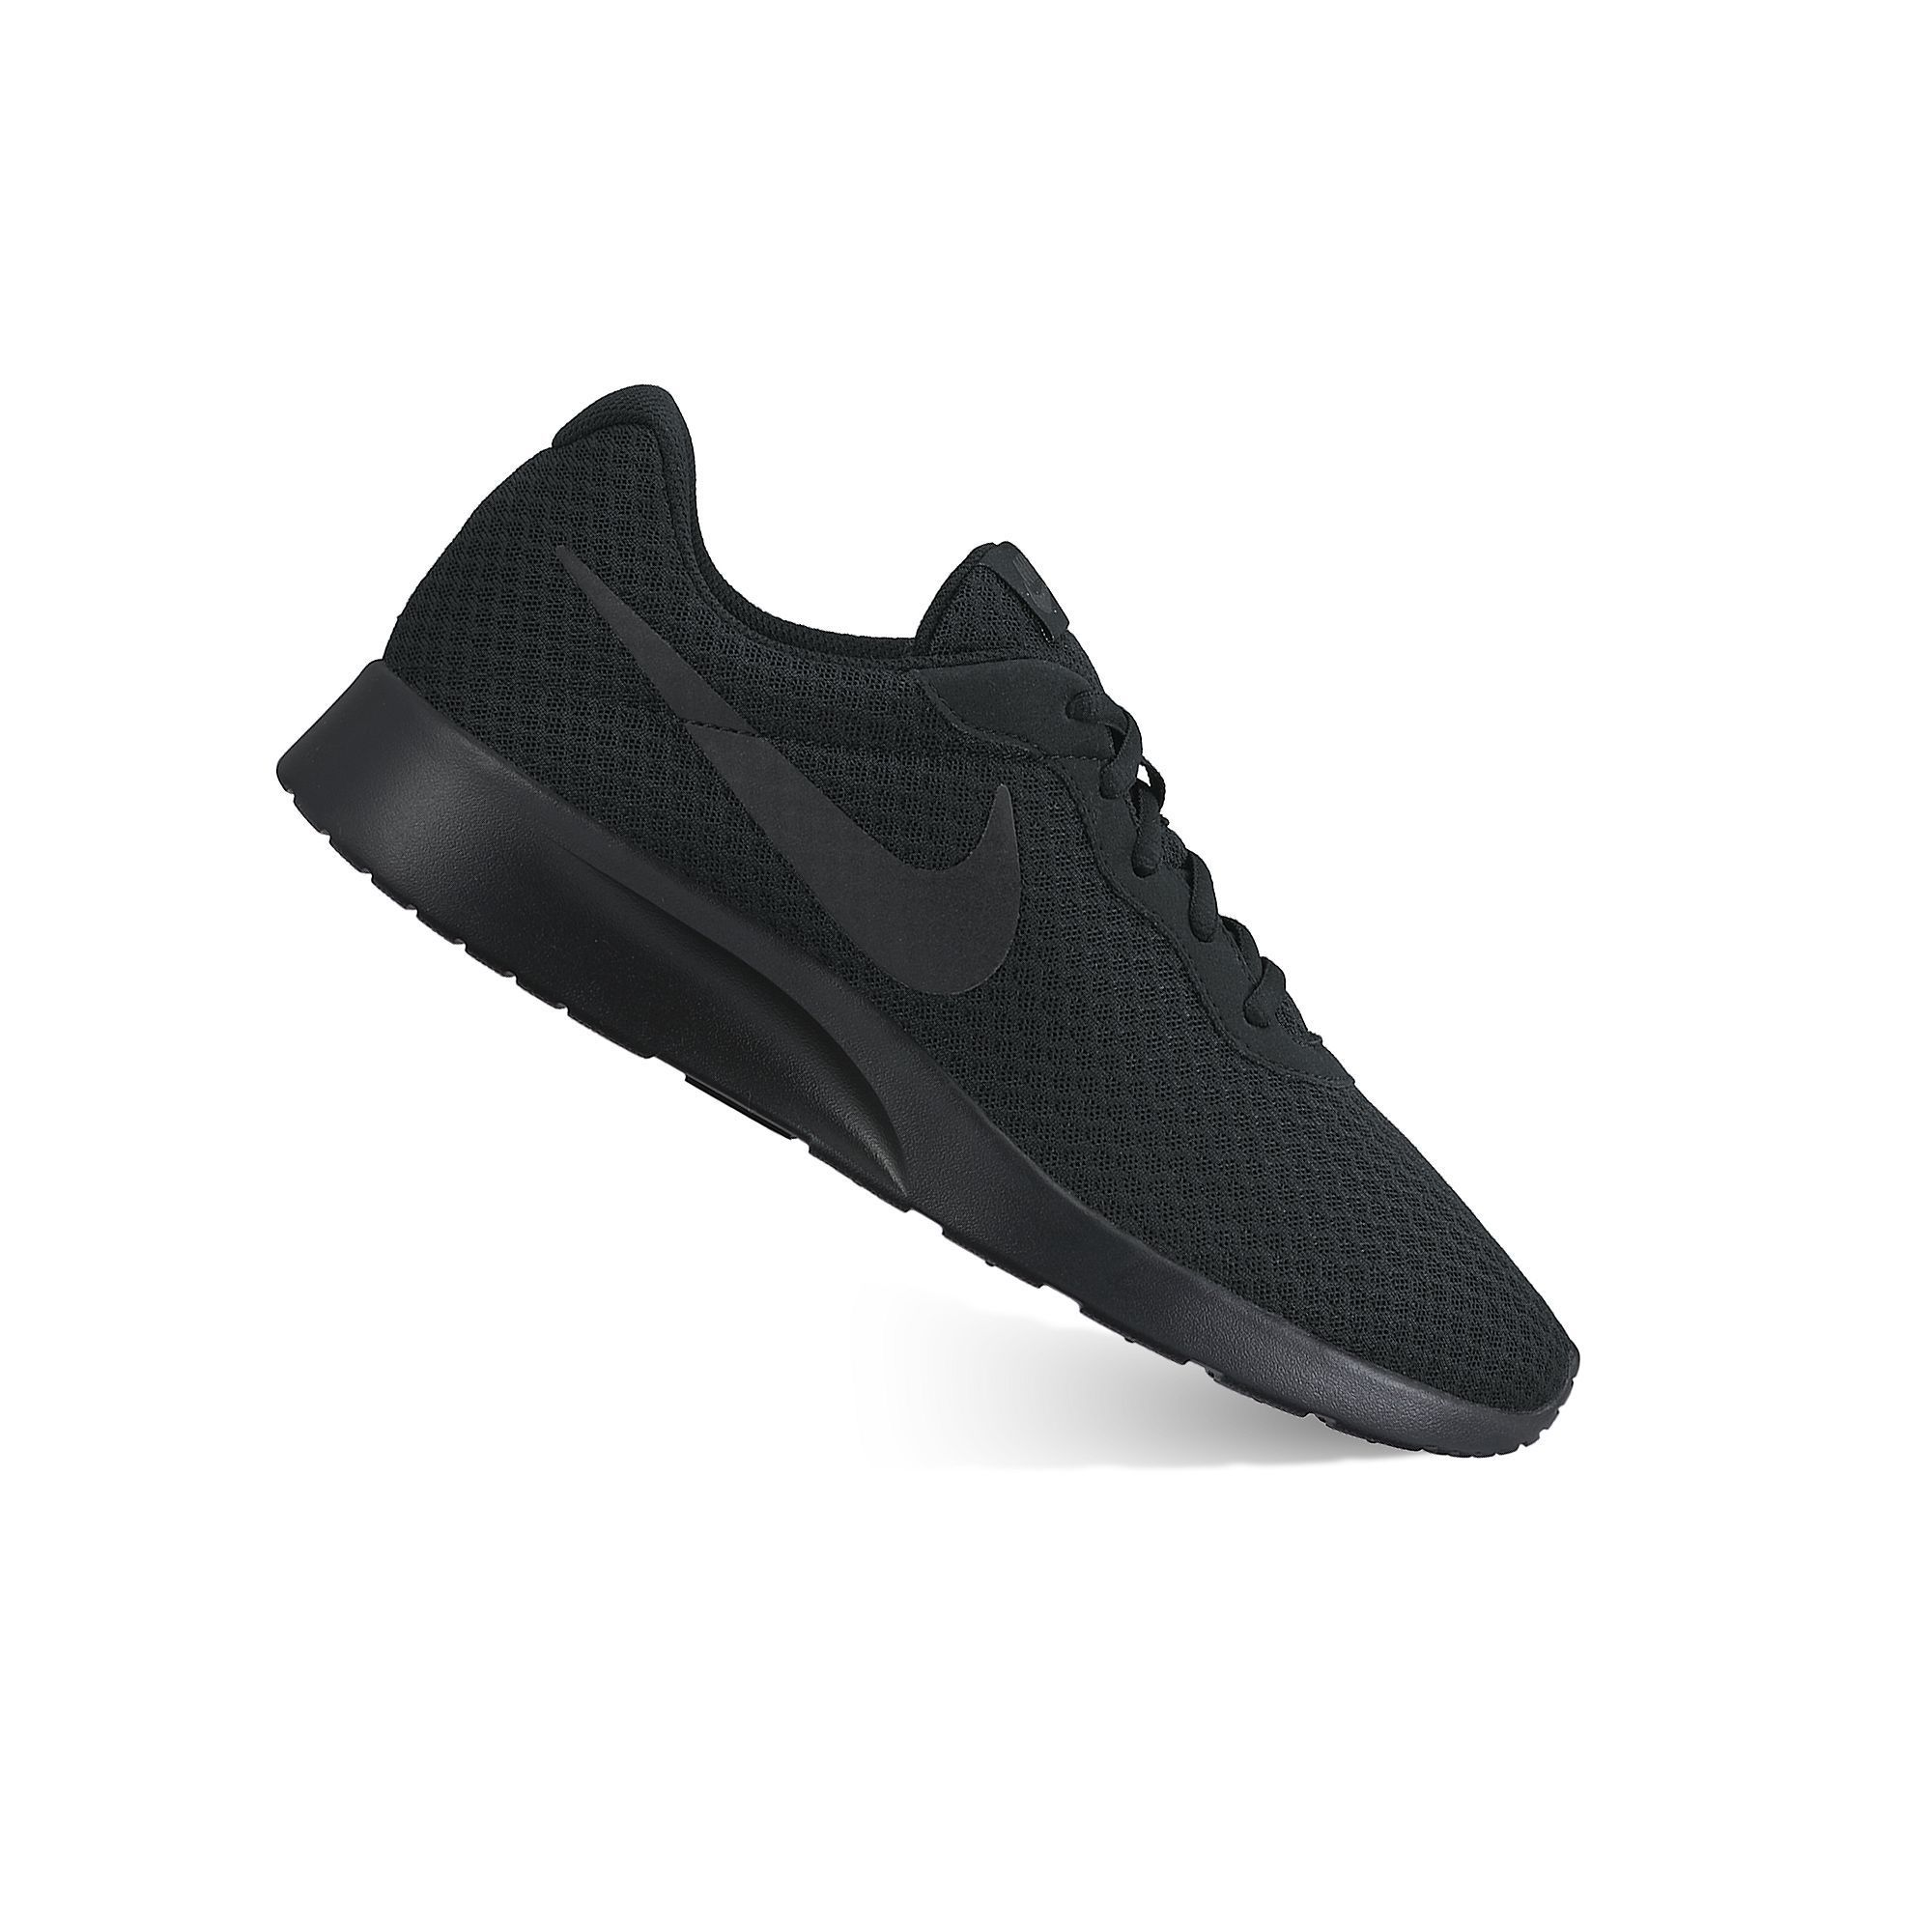 417a08a9d11 Nike Tanjun Men s Athletic Shoes in 2019